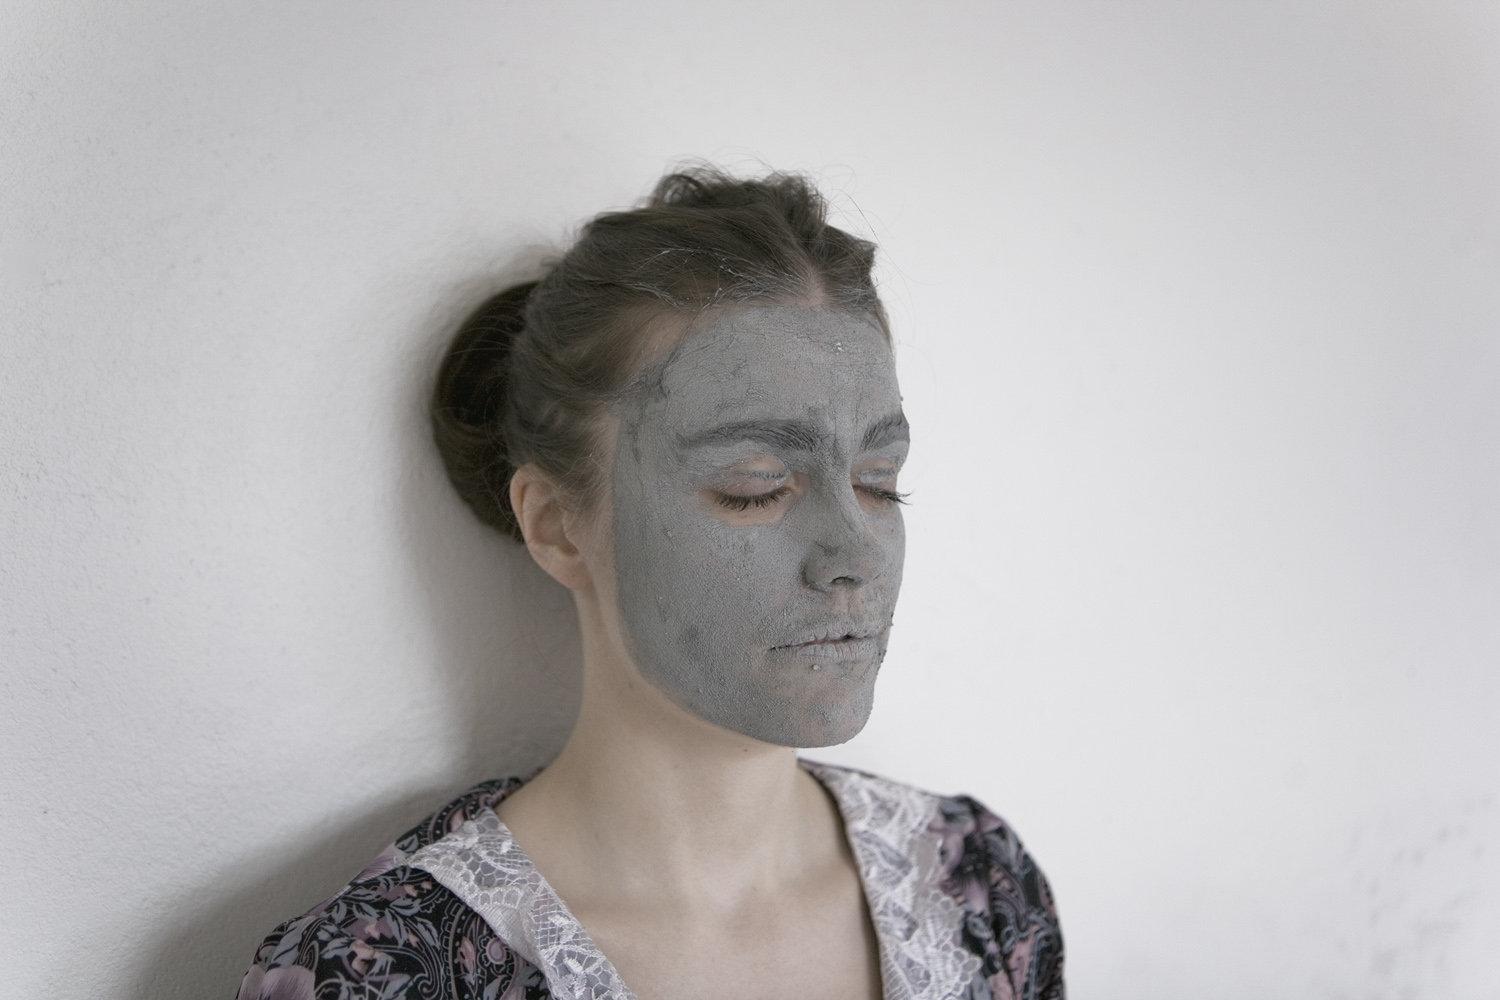 Portrait taken just after participant made her face imprint into the canvas. Iceland, 2011.